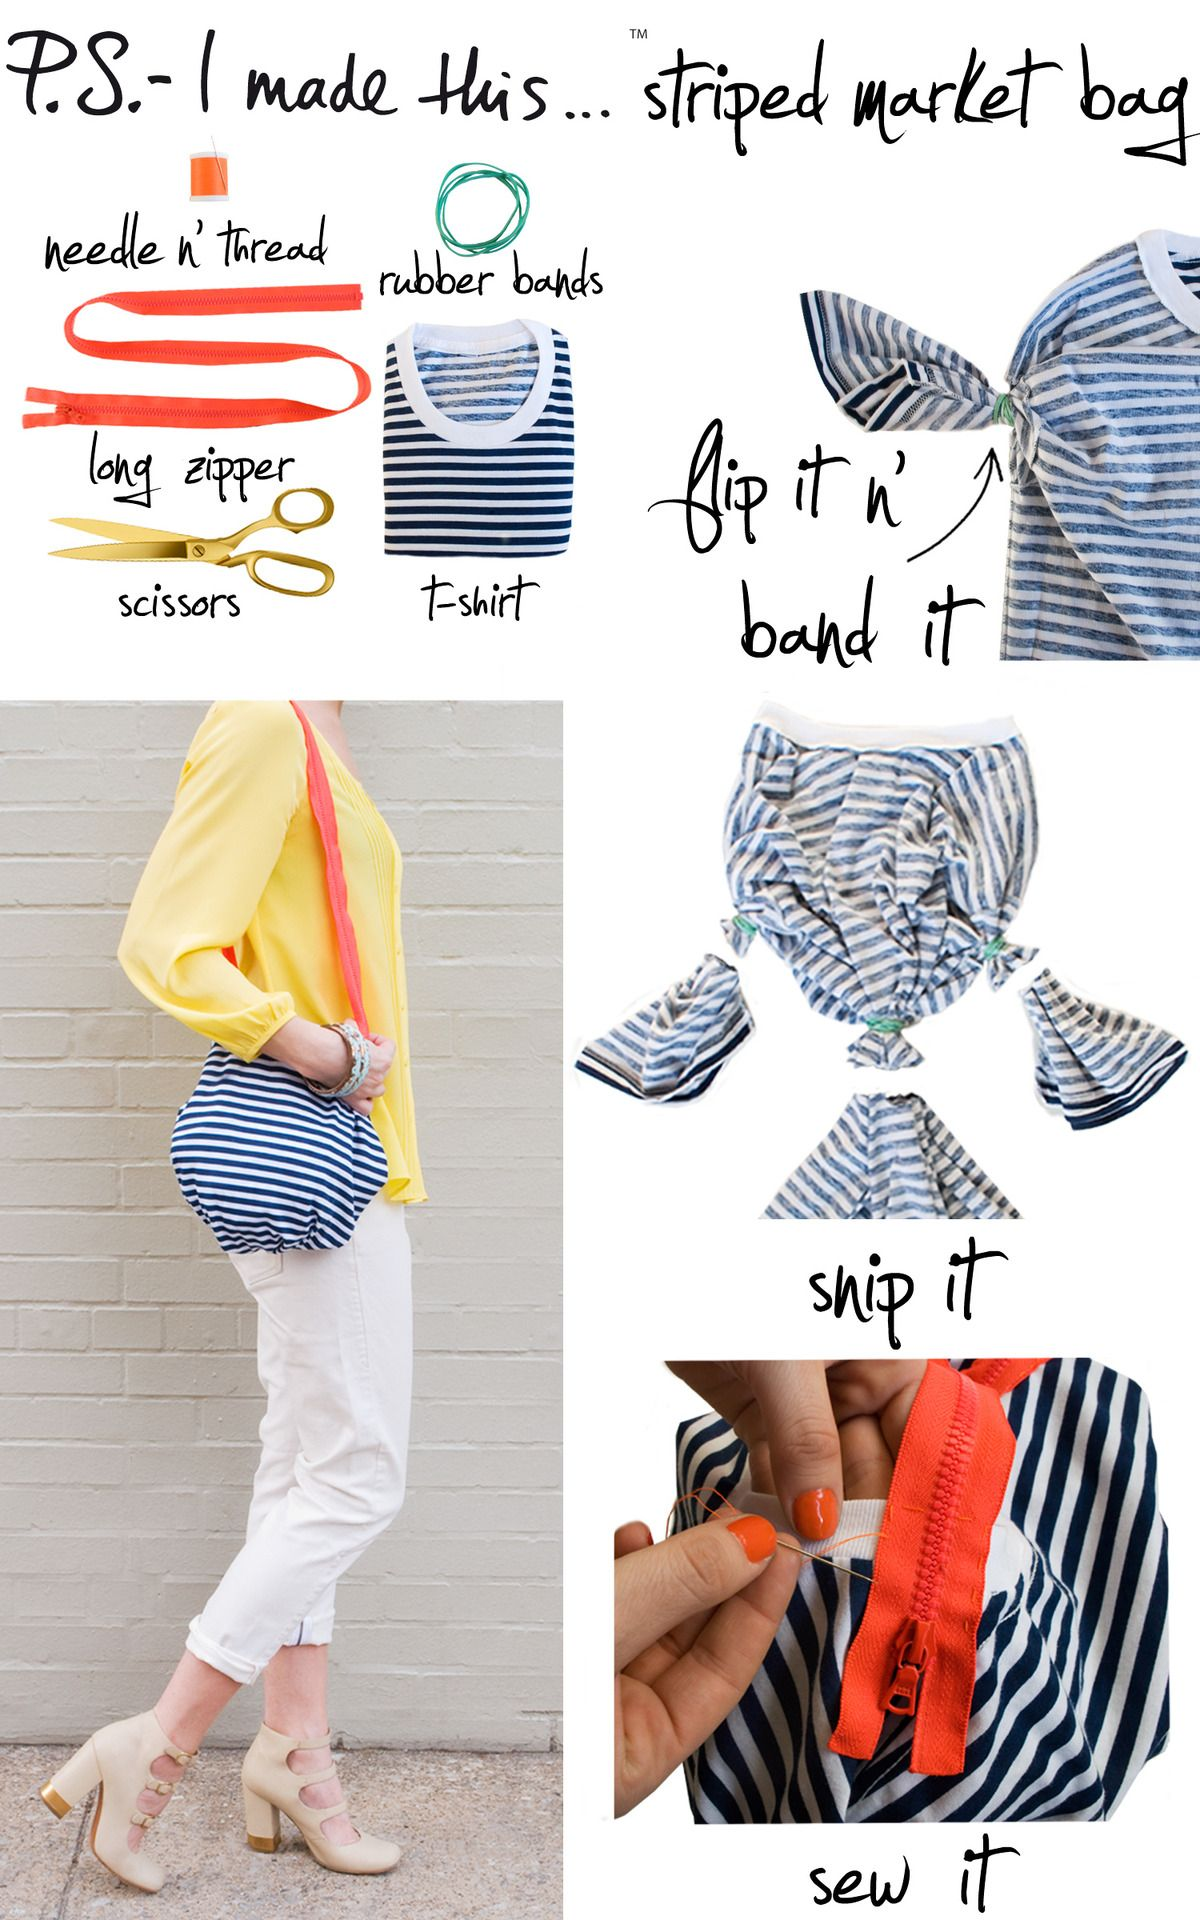 From t-shirt to small bag. Cute, but I wouldn't use a zipper as a strap...and I'd sew the gathers with embroidery floss or upholstery thread rather than using rubber bands.